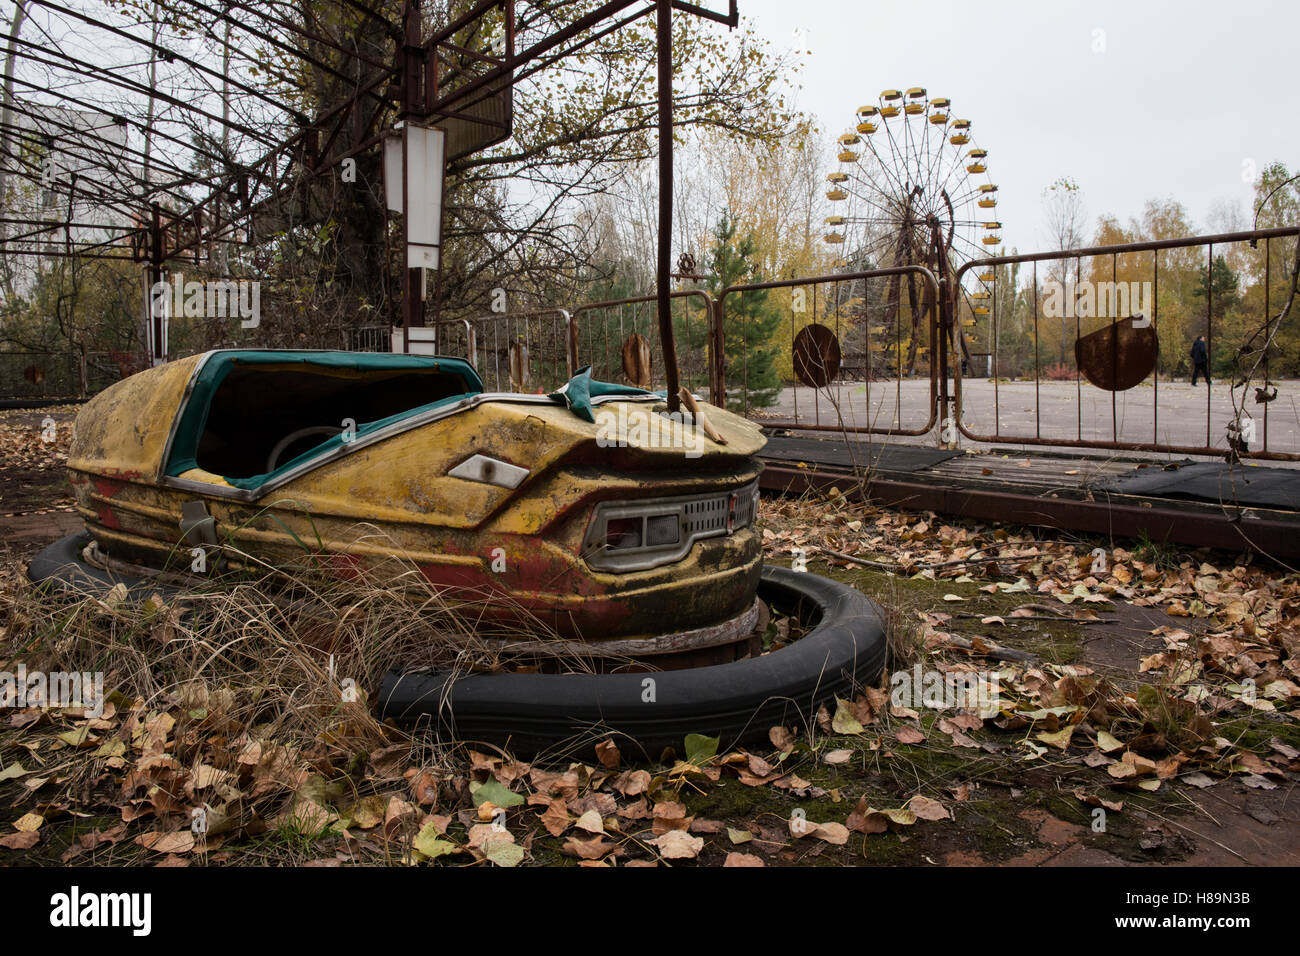 Abandoned amusement park in the ghost town Pripyat after the Chernobyl disaster 1986. Pripyat, Chernobyl Exclusion - Stock Image